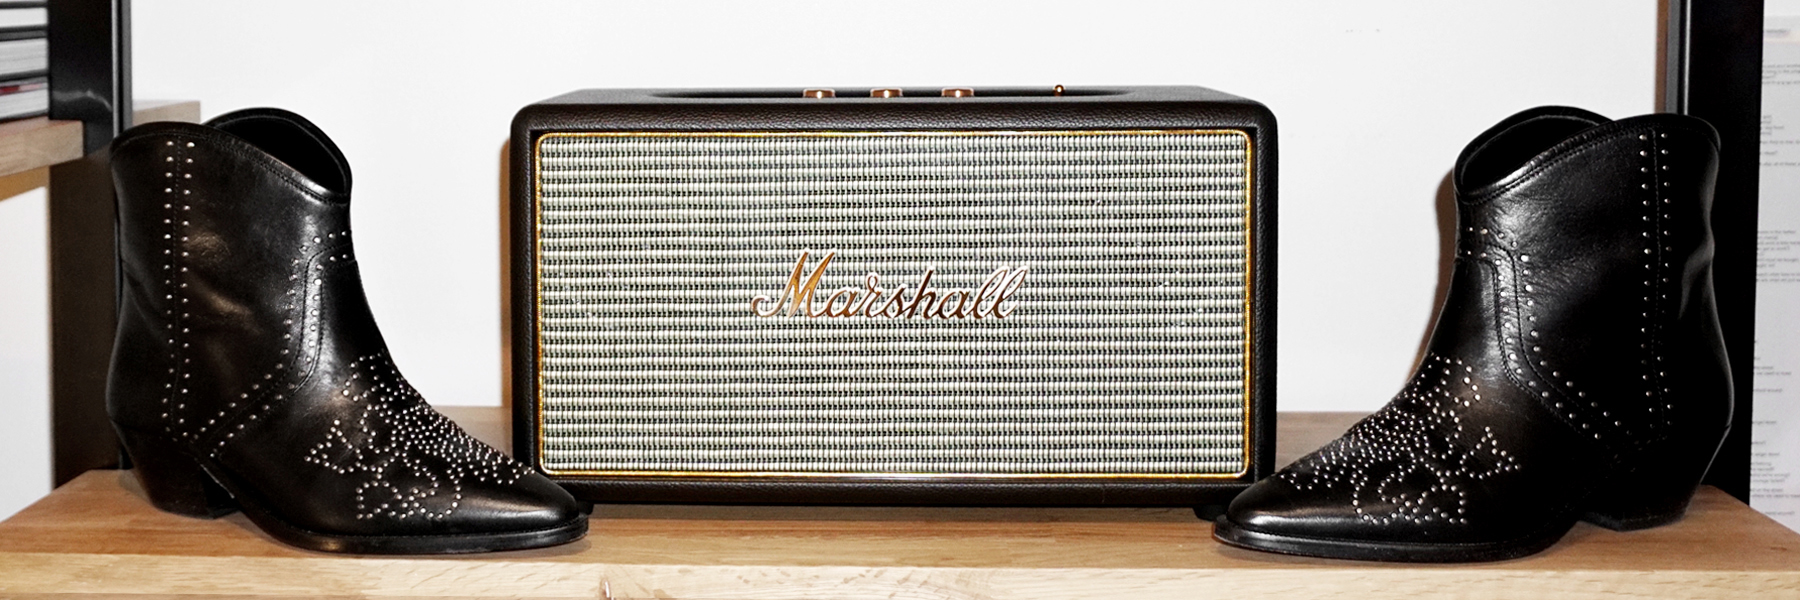 I'm crazy about this Marshall Stanmore speaker. I had seen something like this at the Ludlow Hotel in New York and knew I wanted one in my home.